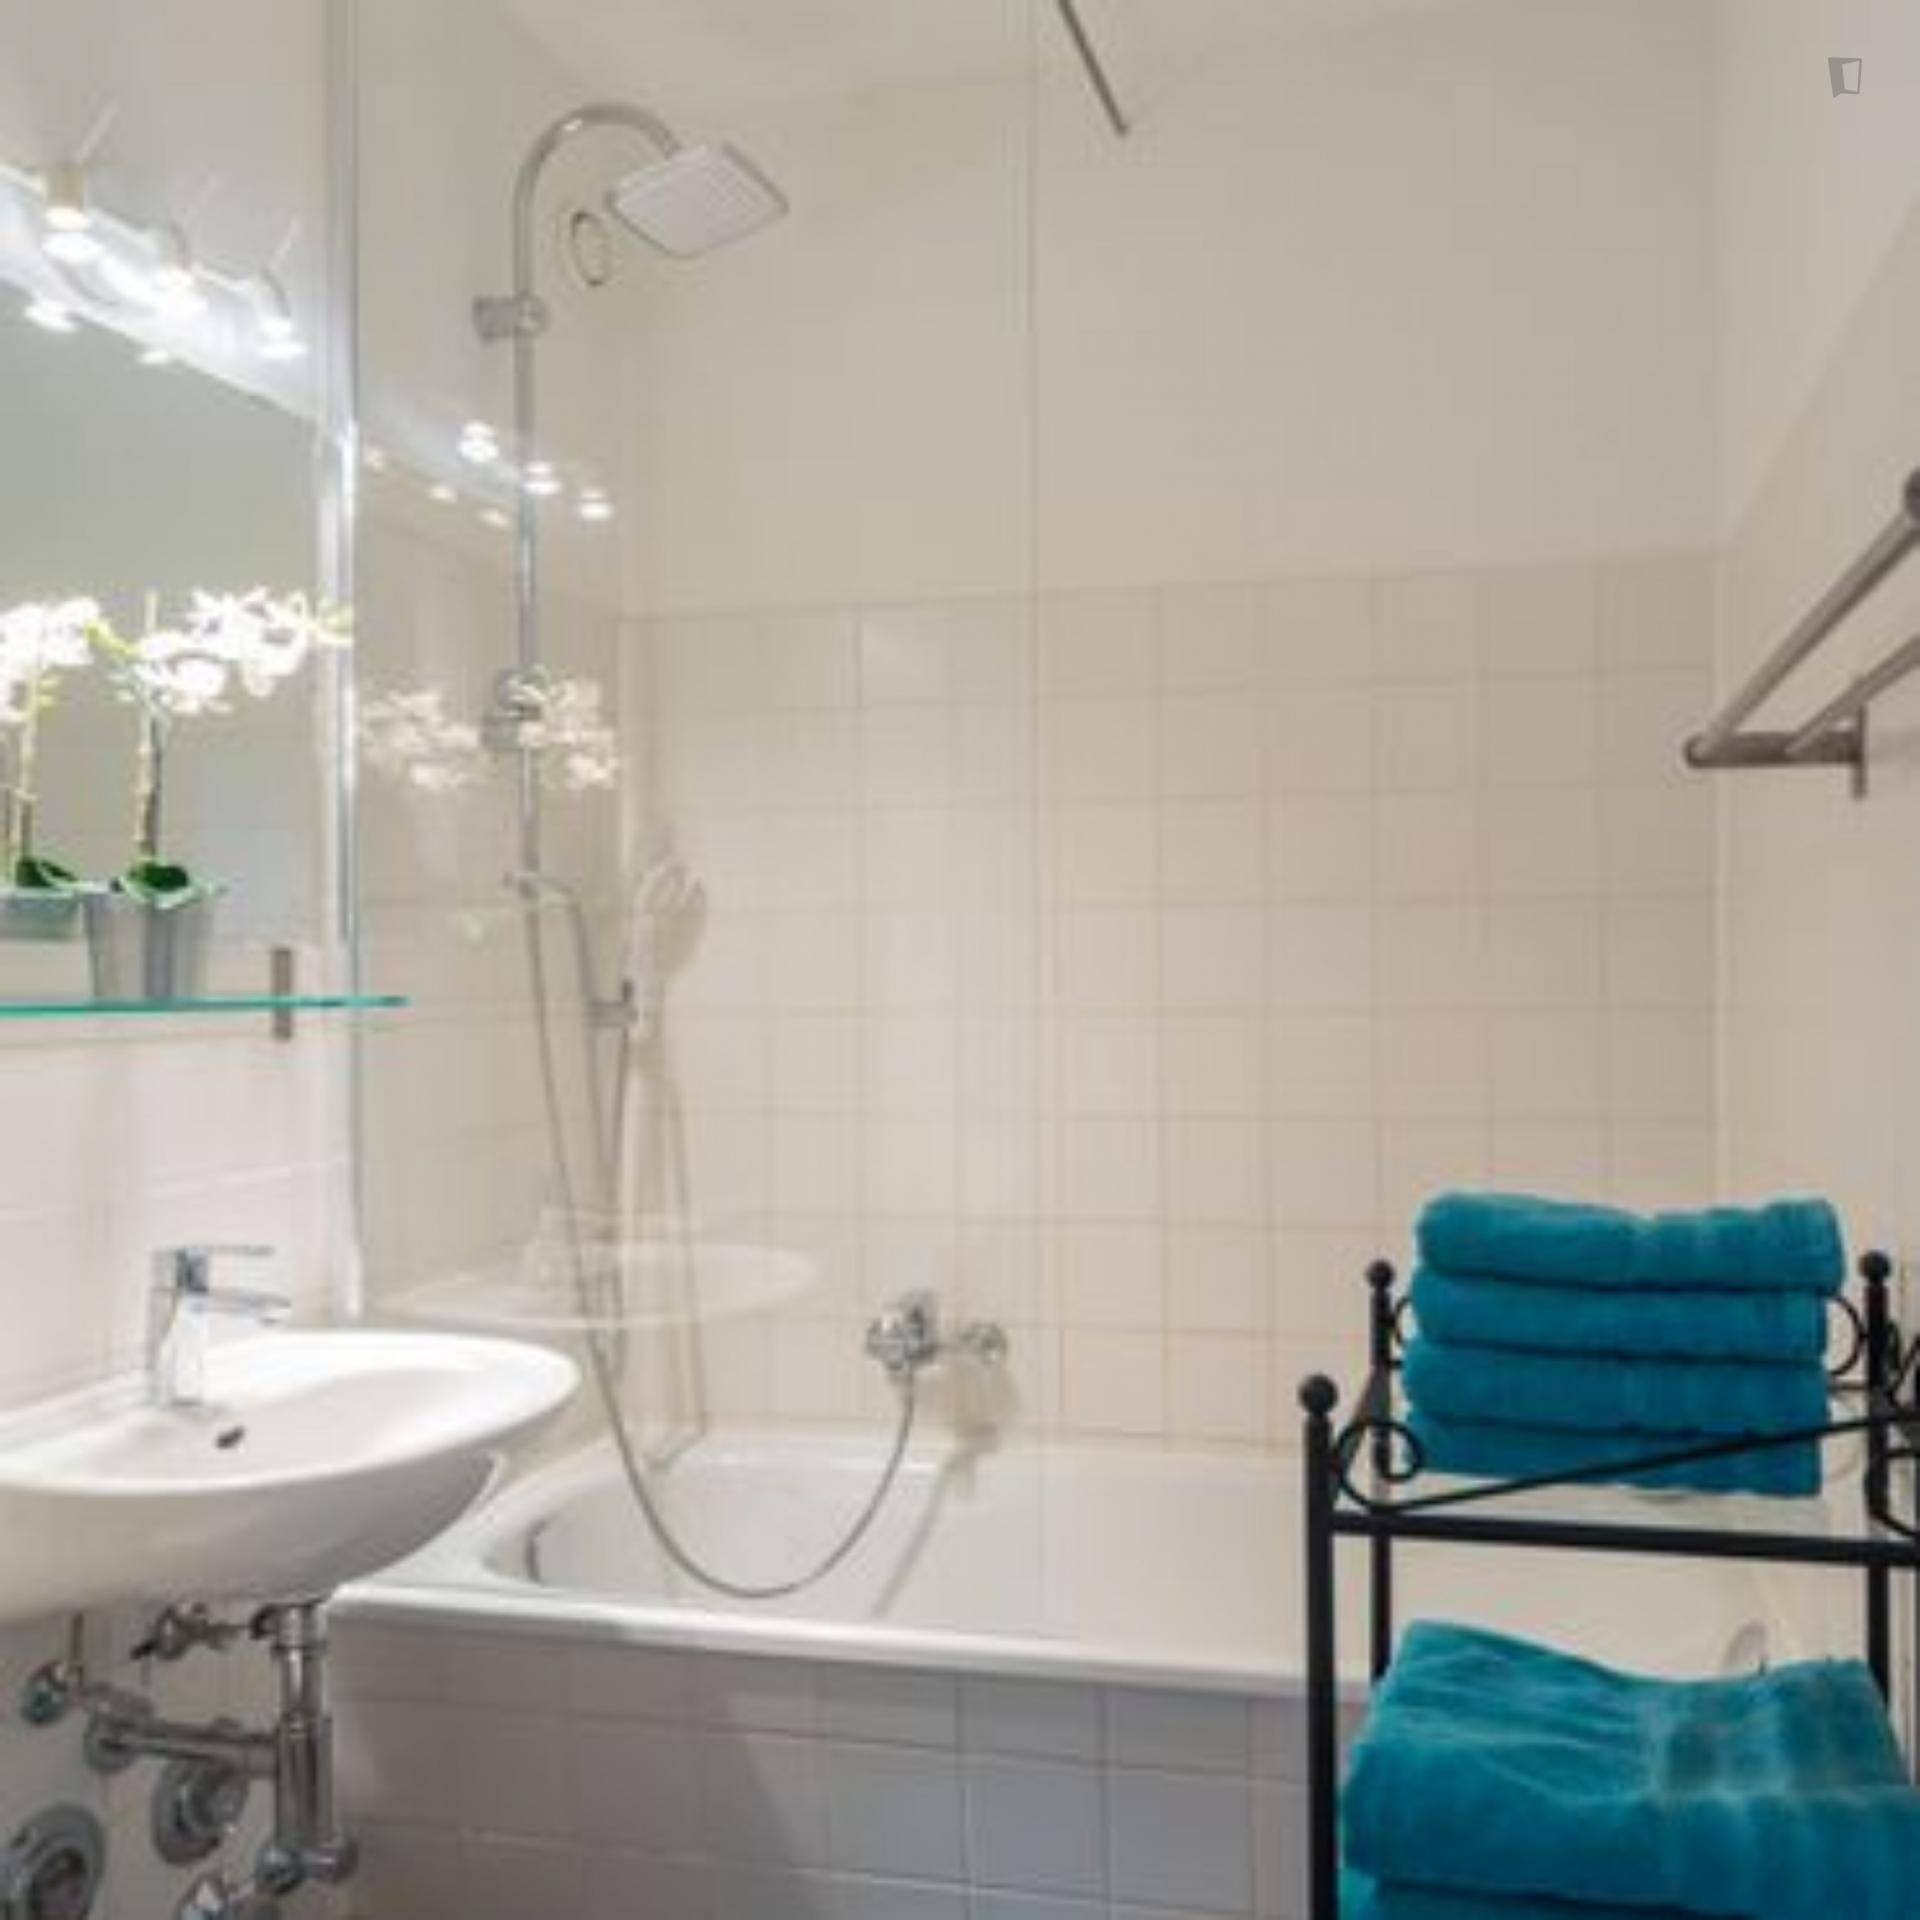 Roch - Furnished flat in Berlin for expats